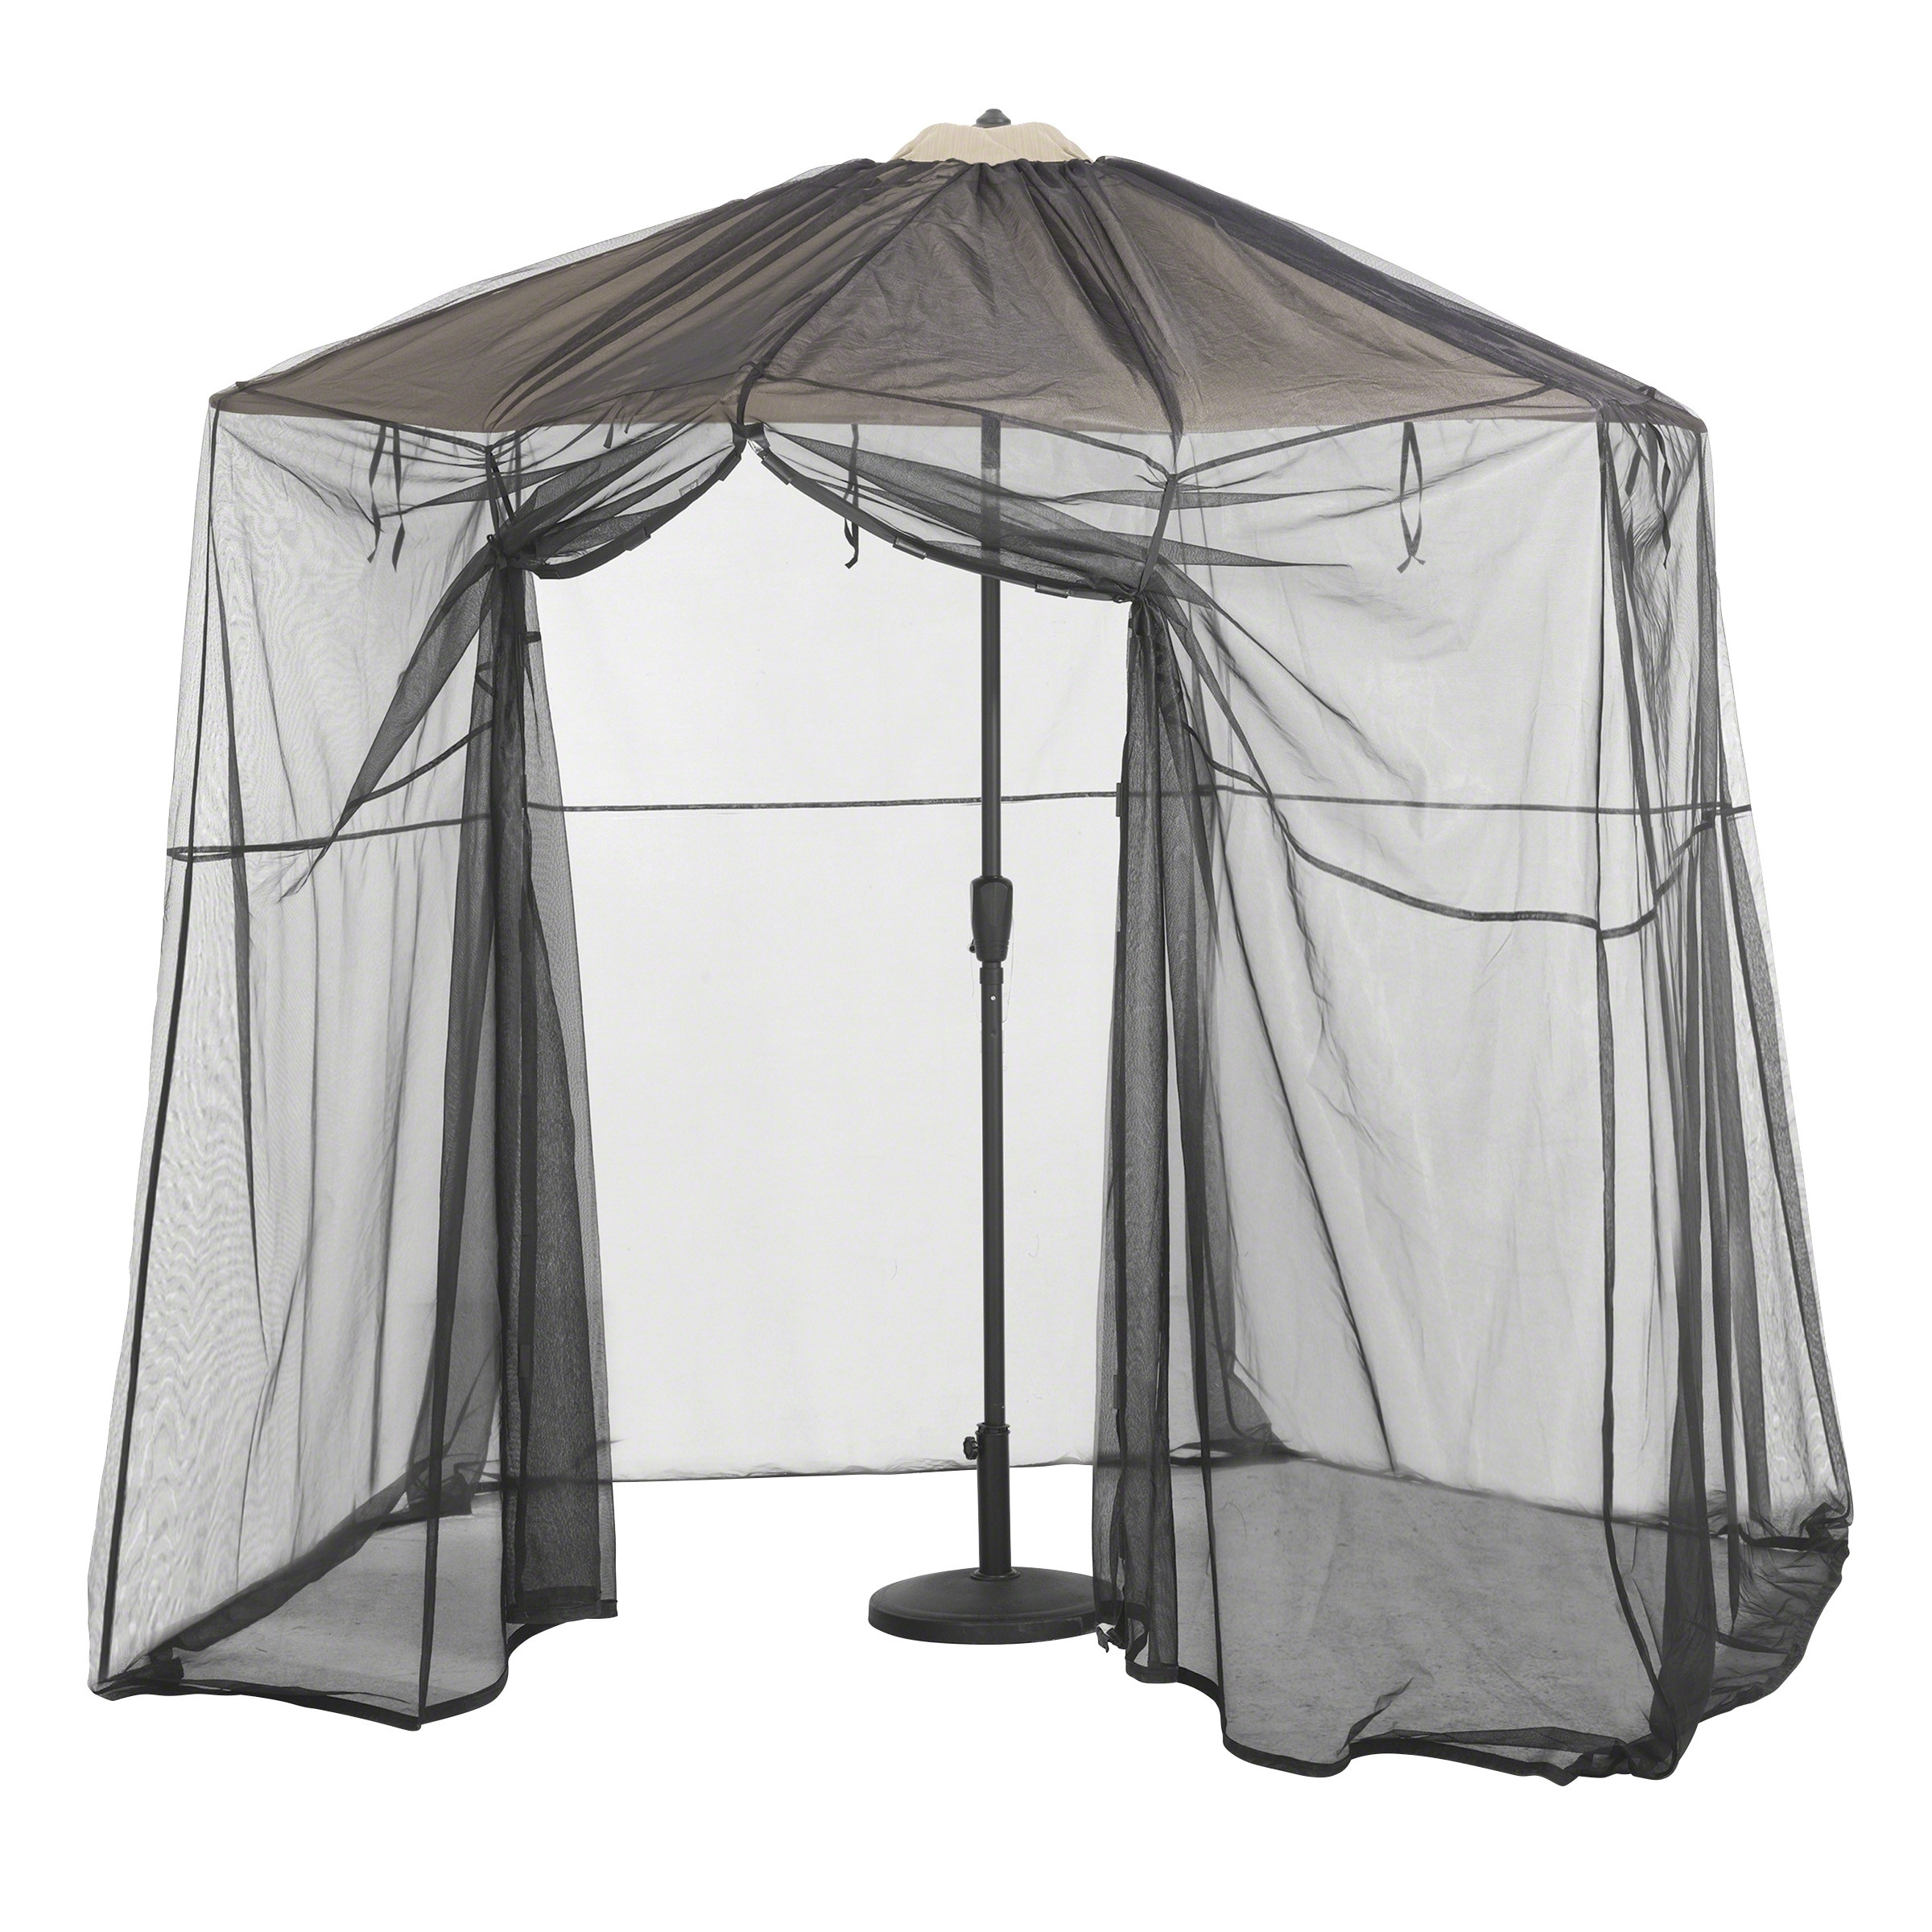 2019 Patio Umbrellas With Netting Pertaining To Classic Accessories Patio Umbrella Mosquito Net Canpoy – Umbrella (View 2 of 20)